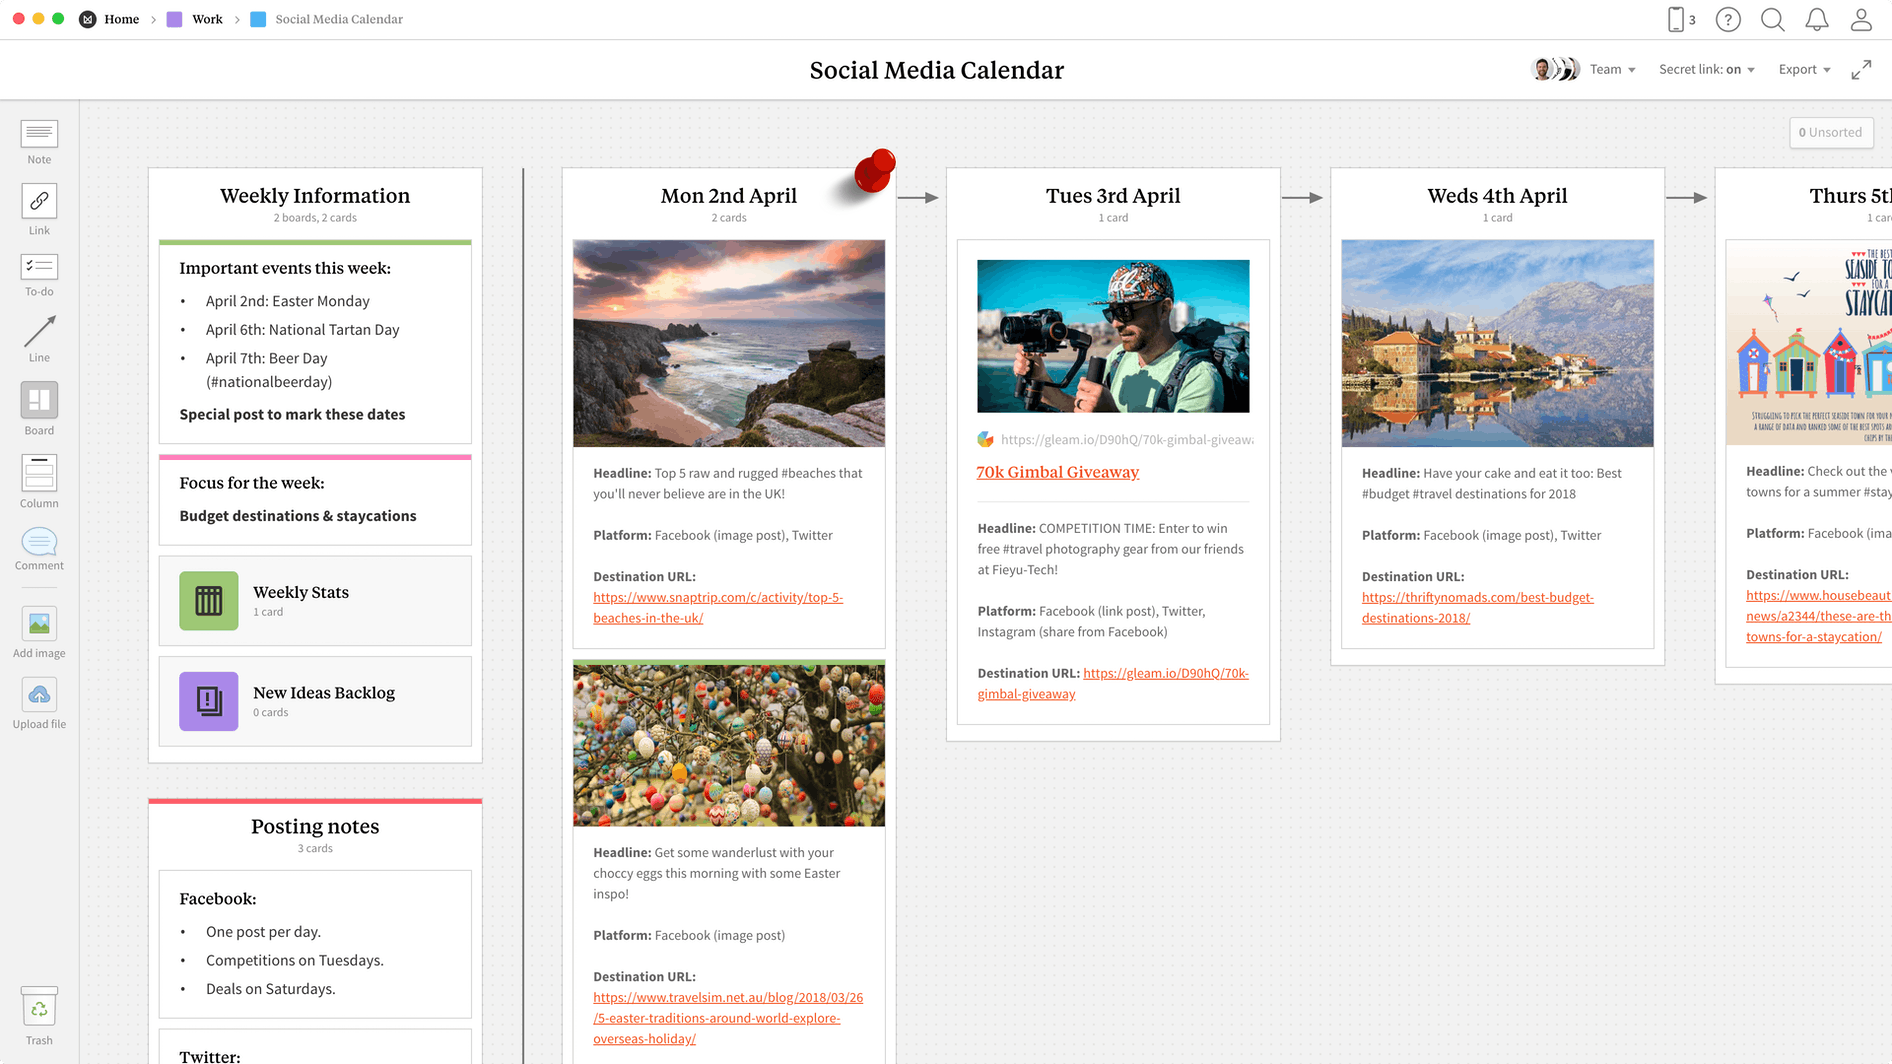 Social Media Calendar Template, within the Milanote app